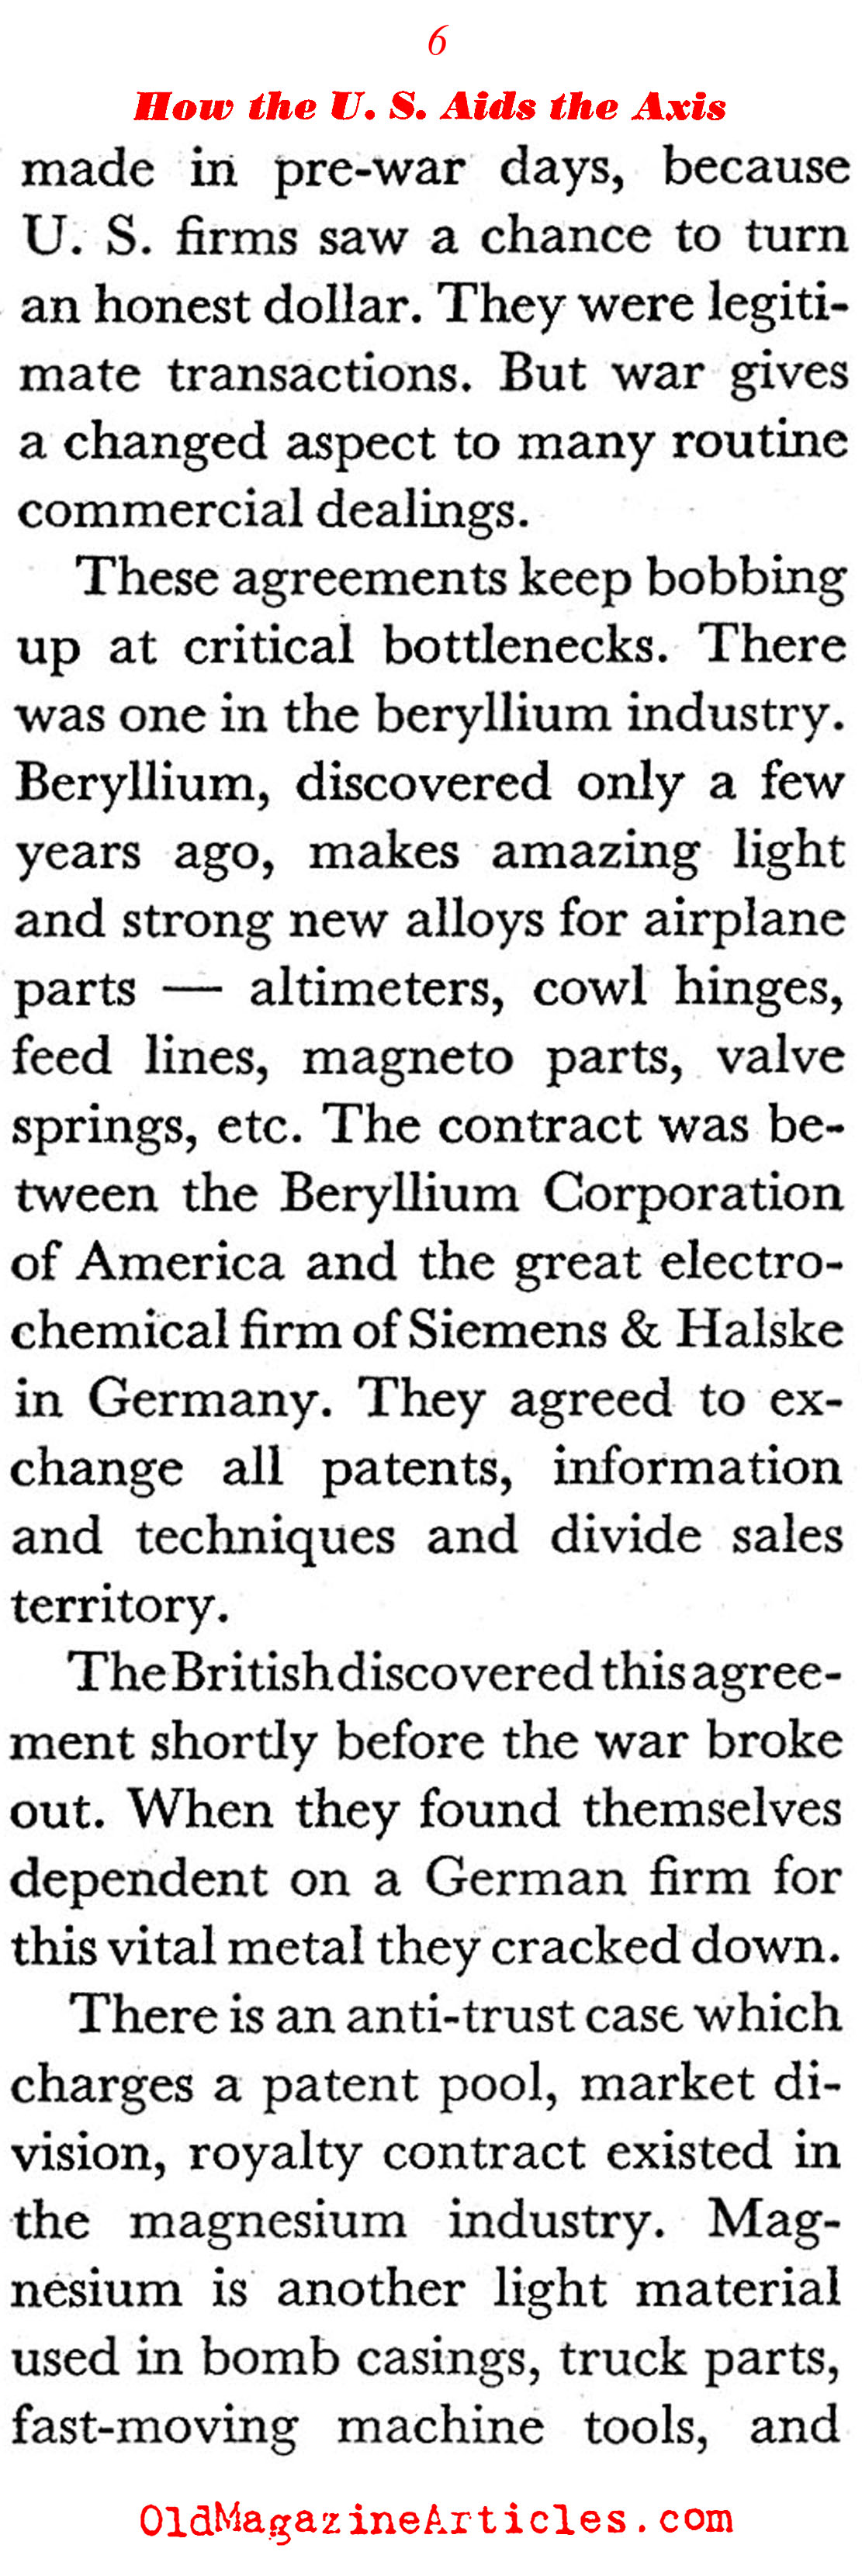 How the US Helped the Fascists Before Entering the War (Coronet Magazine, 1941)